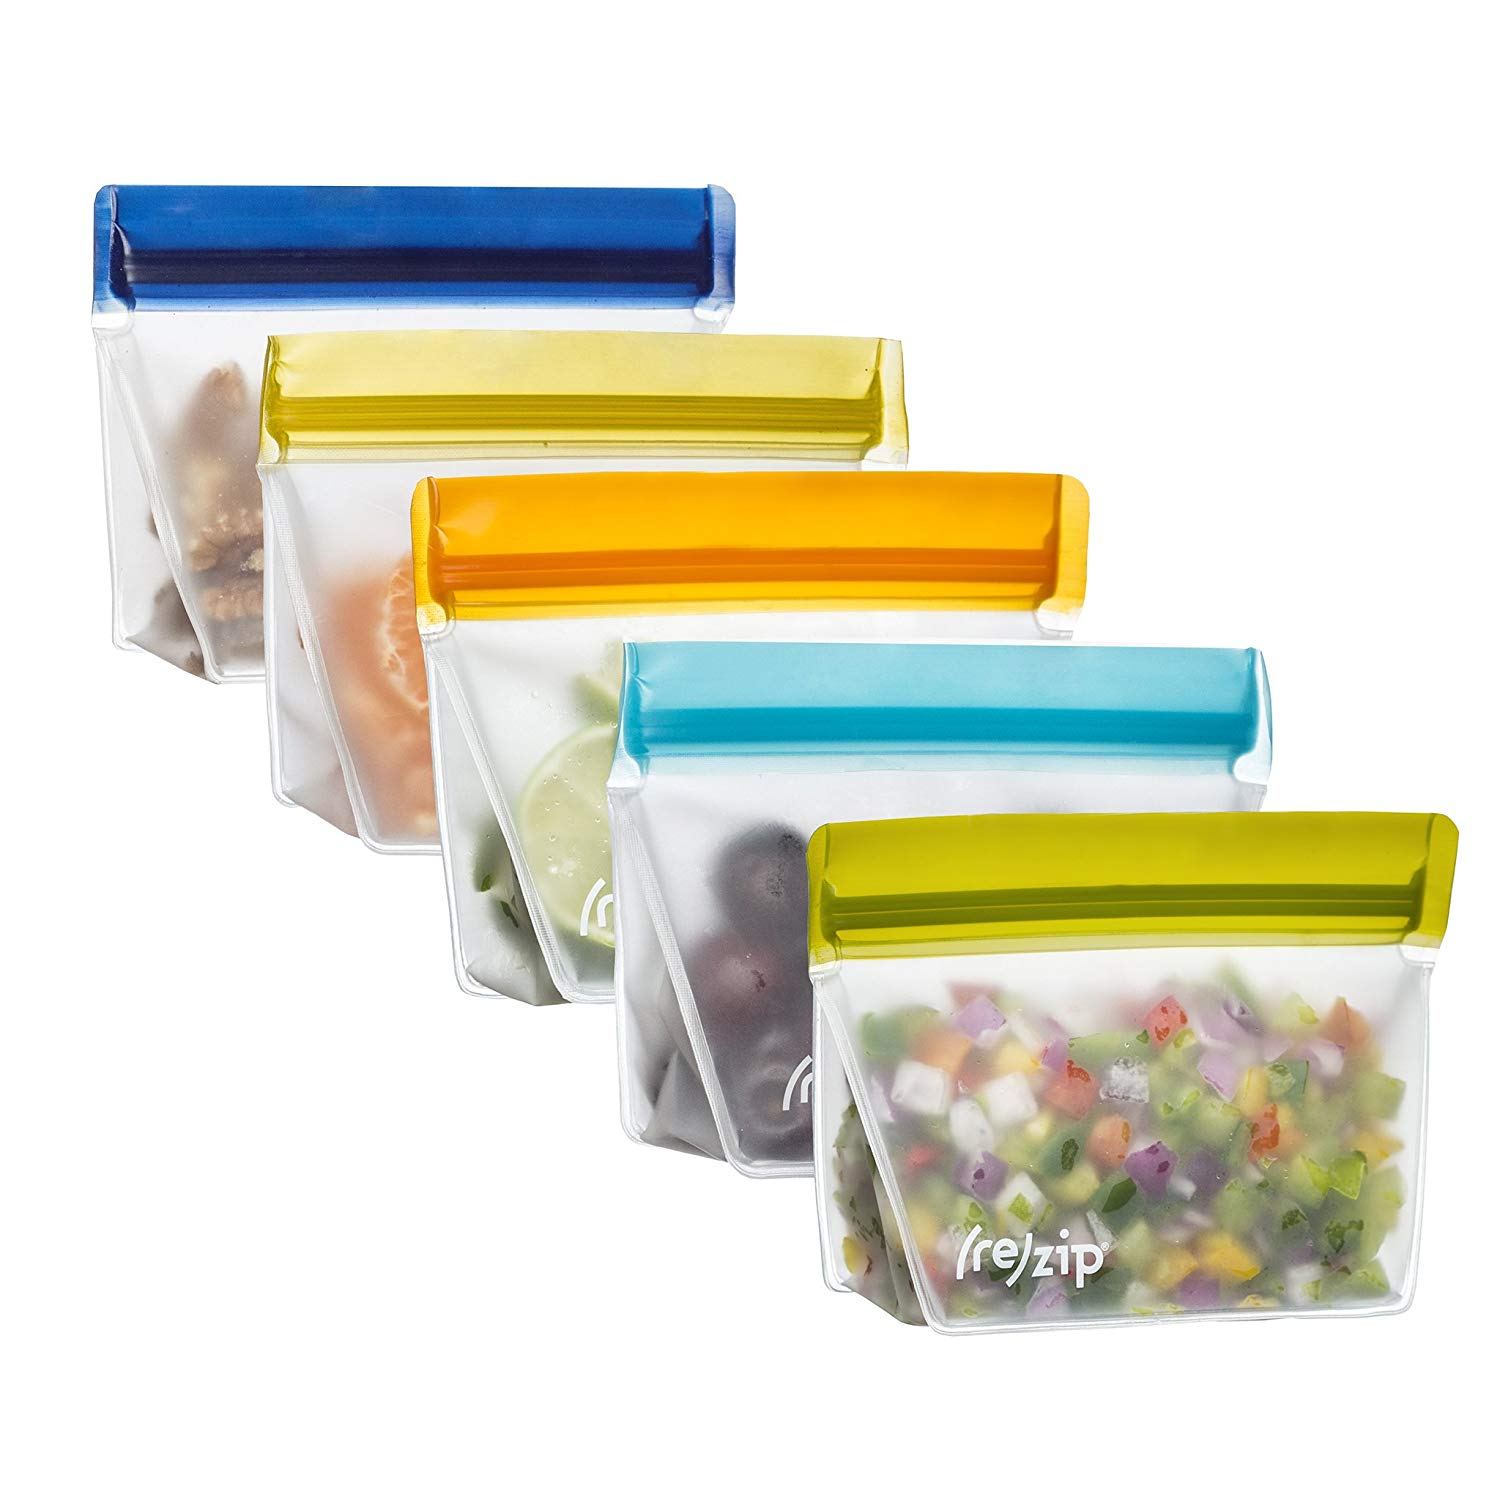 Silicone Bags - Once I started working an office job where I was packing a lunch and snacks, I realized just how much unnecessary disposable plastic I was using out of convince. And you can't count on this administration to do shit about the planet, so we have to help our fucking selves. These reusable silicone bags are so brilliant. Dishwasher safe, hypoallergenic, waste reducing, fun-color sealing, and damn near indestructible, you have no excuse by your own stubbornness to not buy a set. Variety packs with different size and color selections are available, and you won't be sorry for introducing any of them into your home and workday lunch bag.